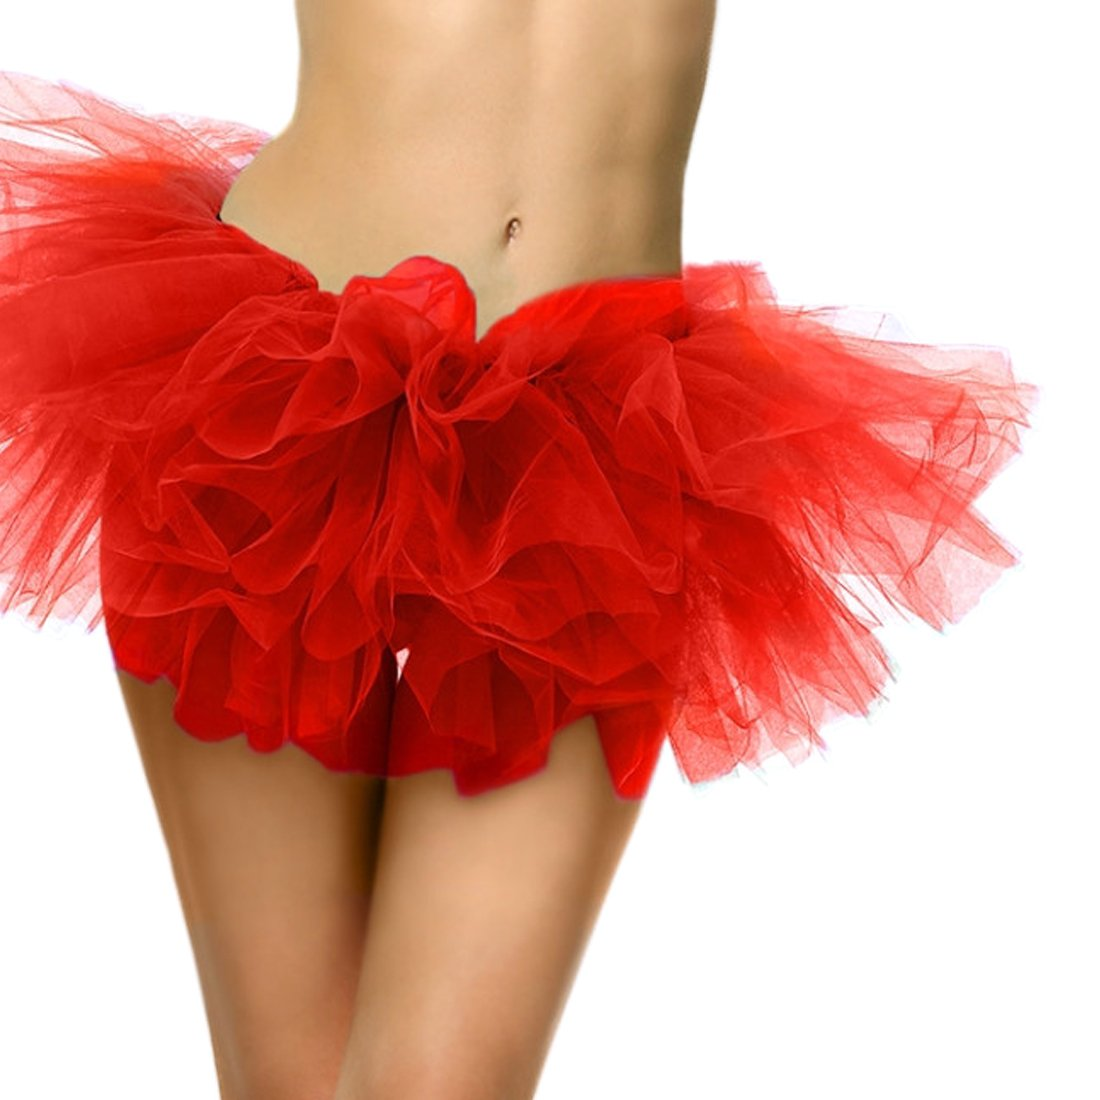 Slocyclub Adult Tutu Skirt Ladies Short Ballet Dance Dress 5 Layers colorful Puff Skirts by Slocyclub (Image #4)